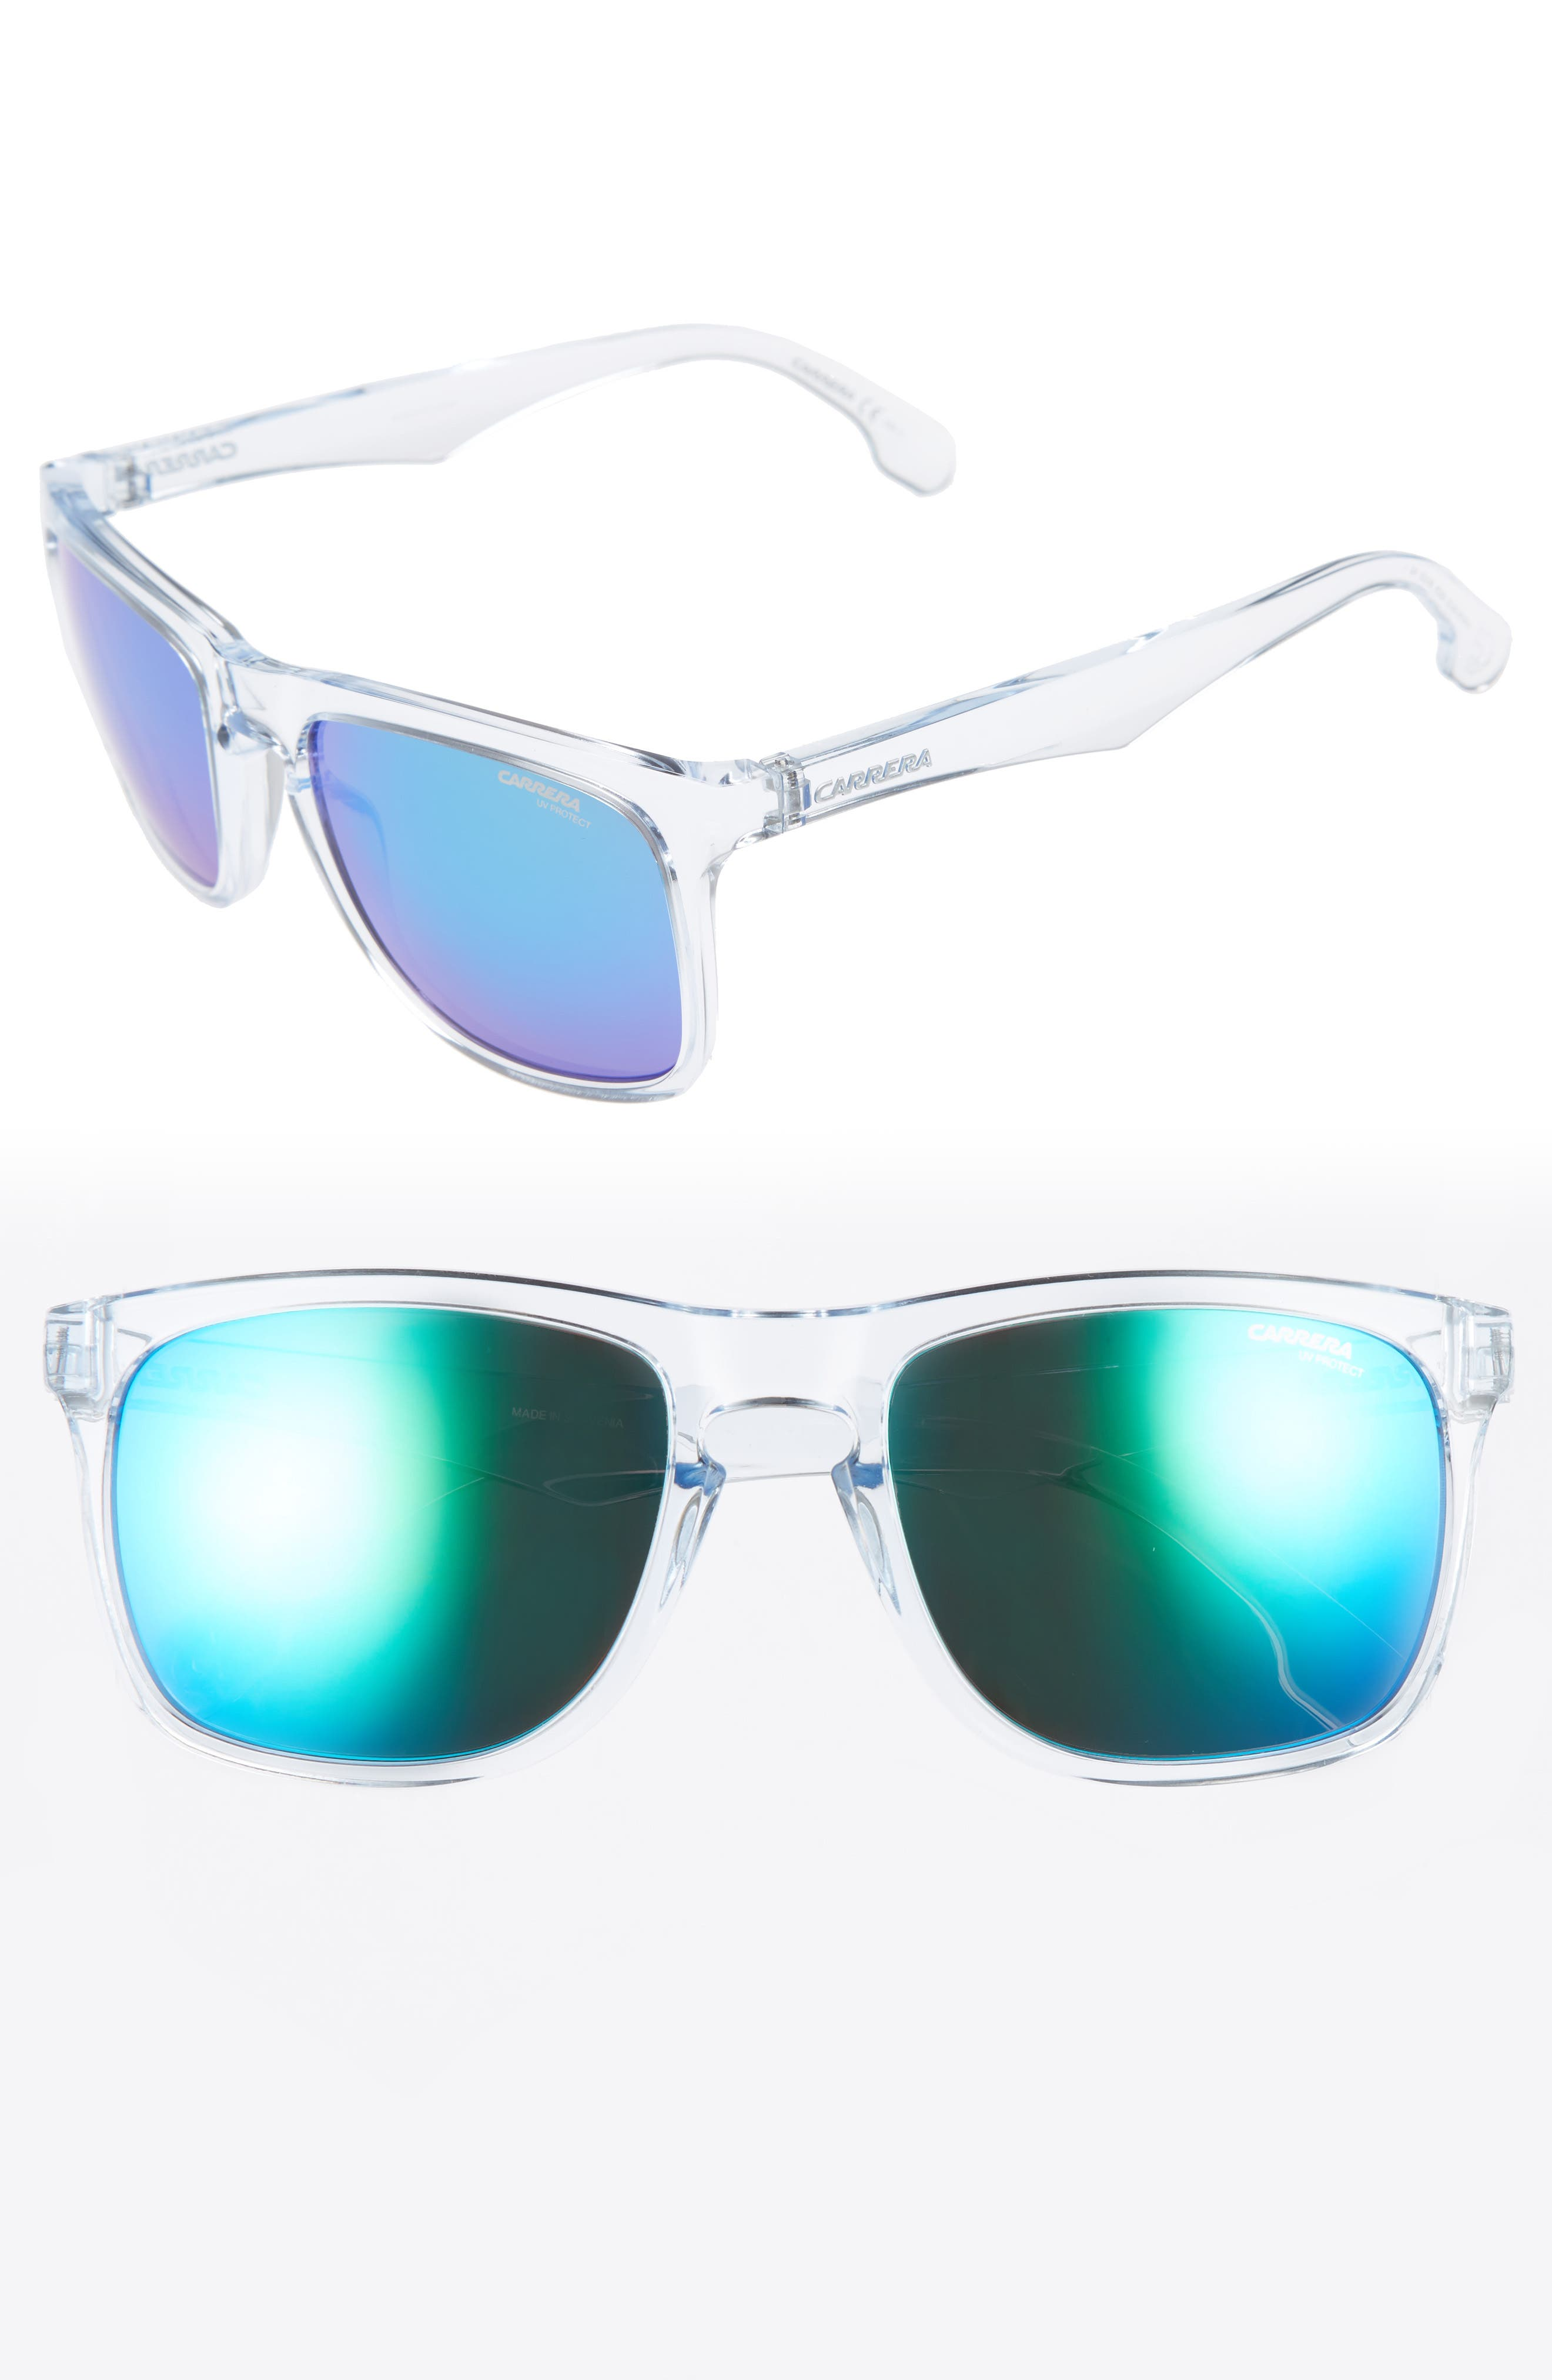 56mm Mirrored Lens Sunglasses,                         Main,                         color,